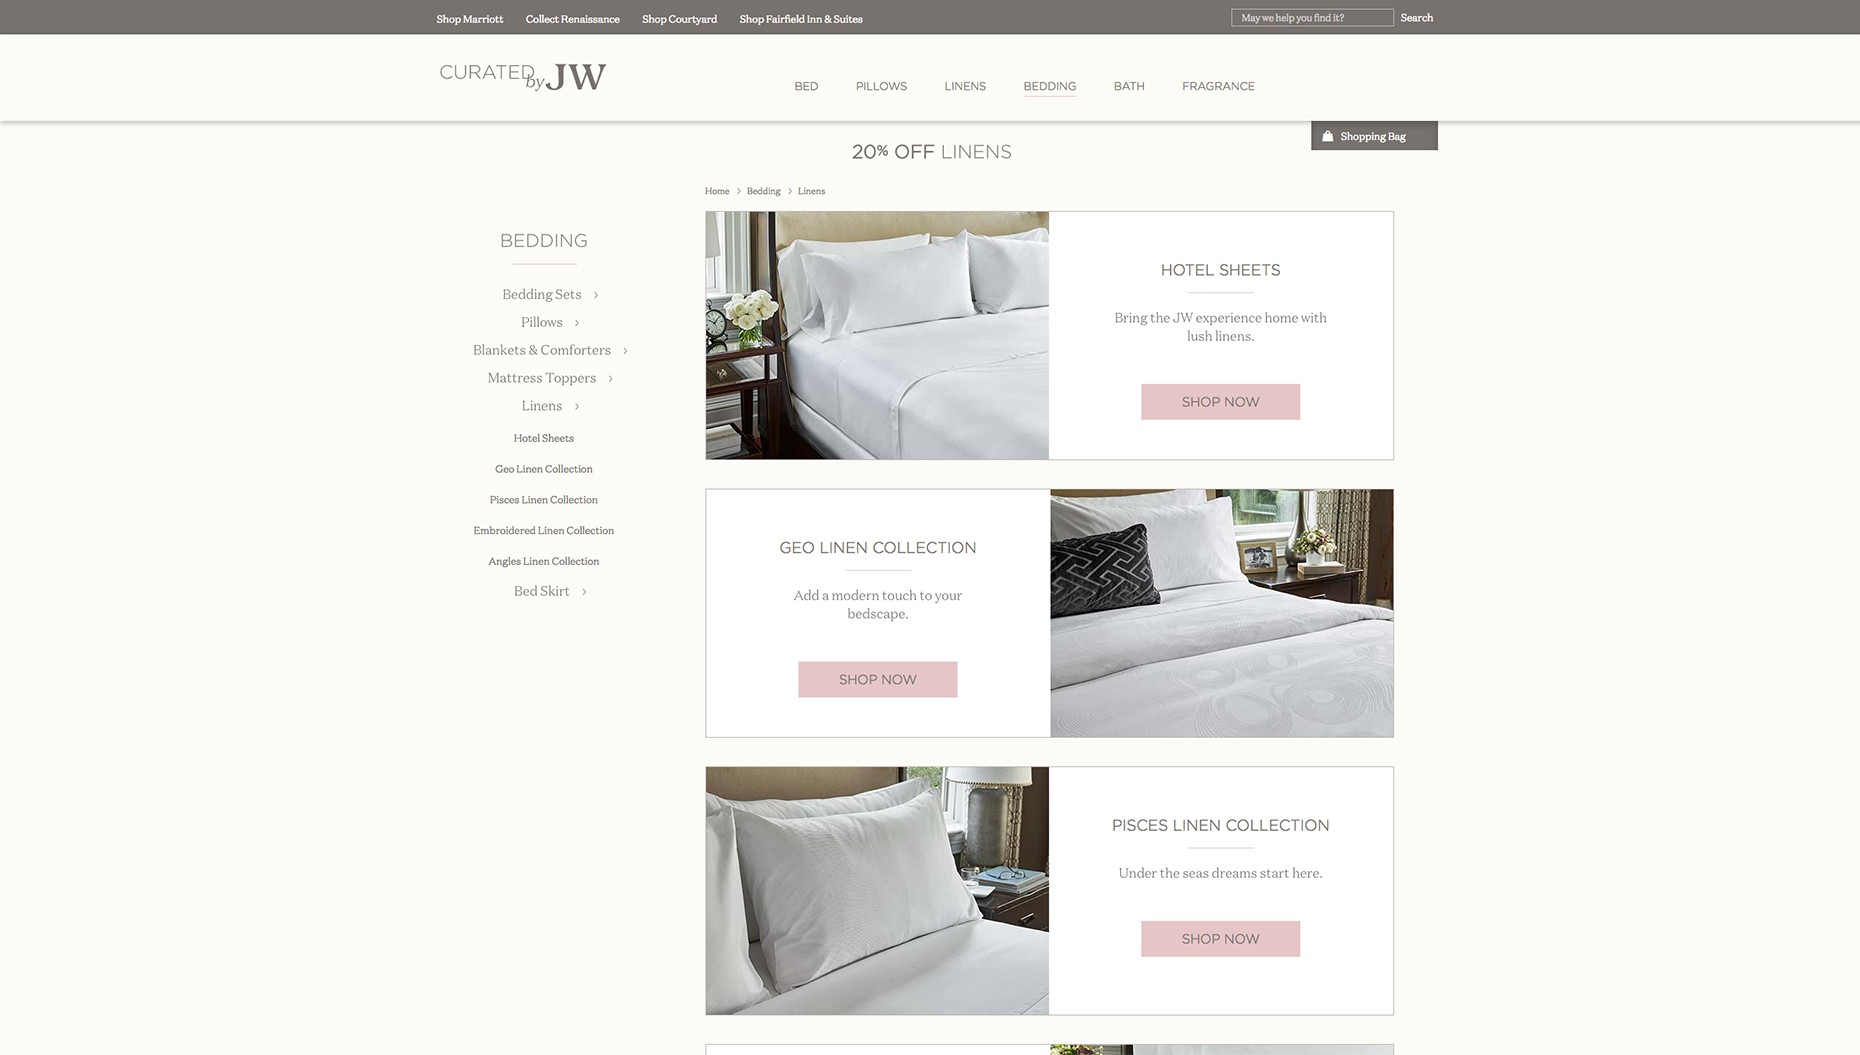 JW-Marriott-Catalog-2